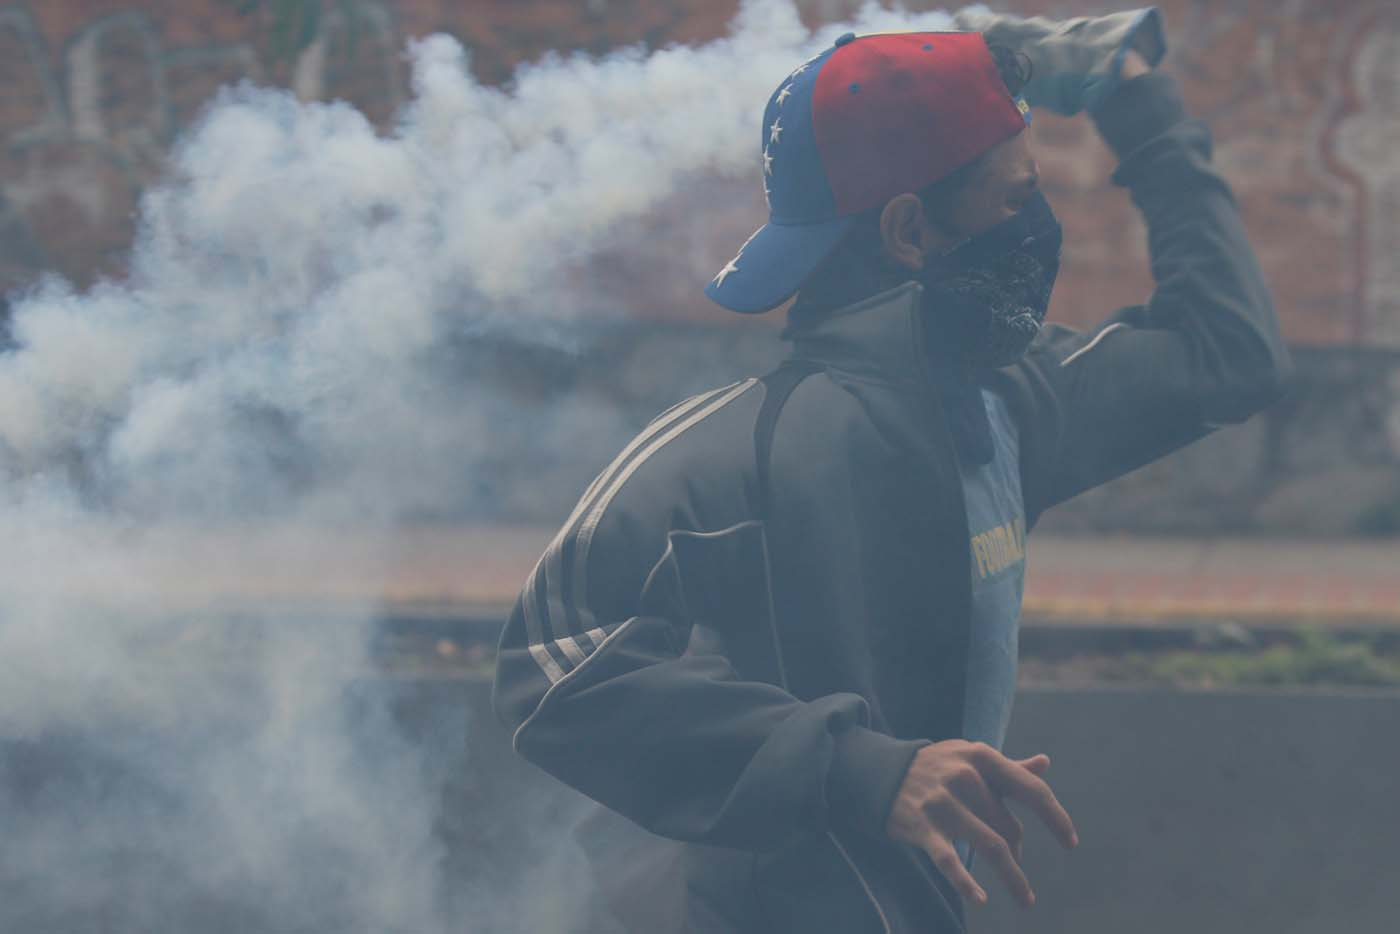 A demonstrator throws back a tear gas canister during a protest against Venezuela's President Nicolas Maduro's government in Caracas, Venezuela May 2, 2017. REUTERS/Carlos Garcia Rawlins